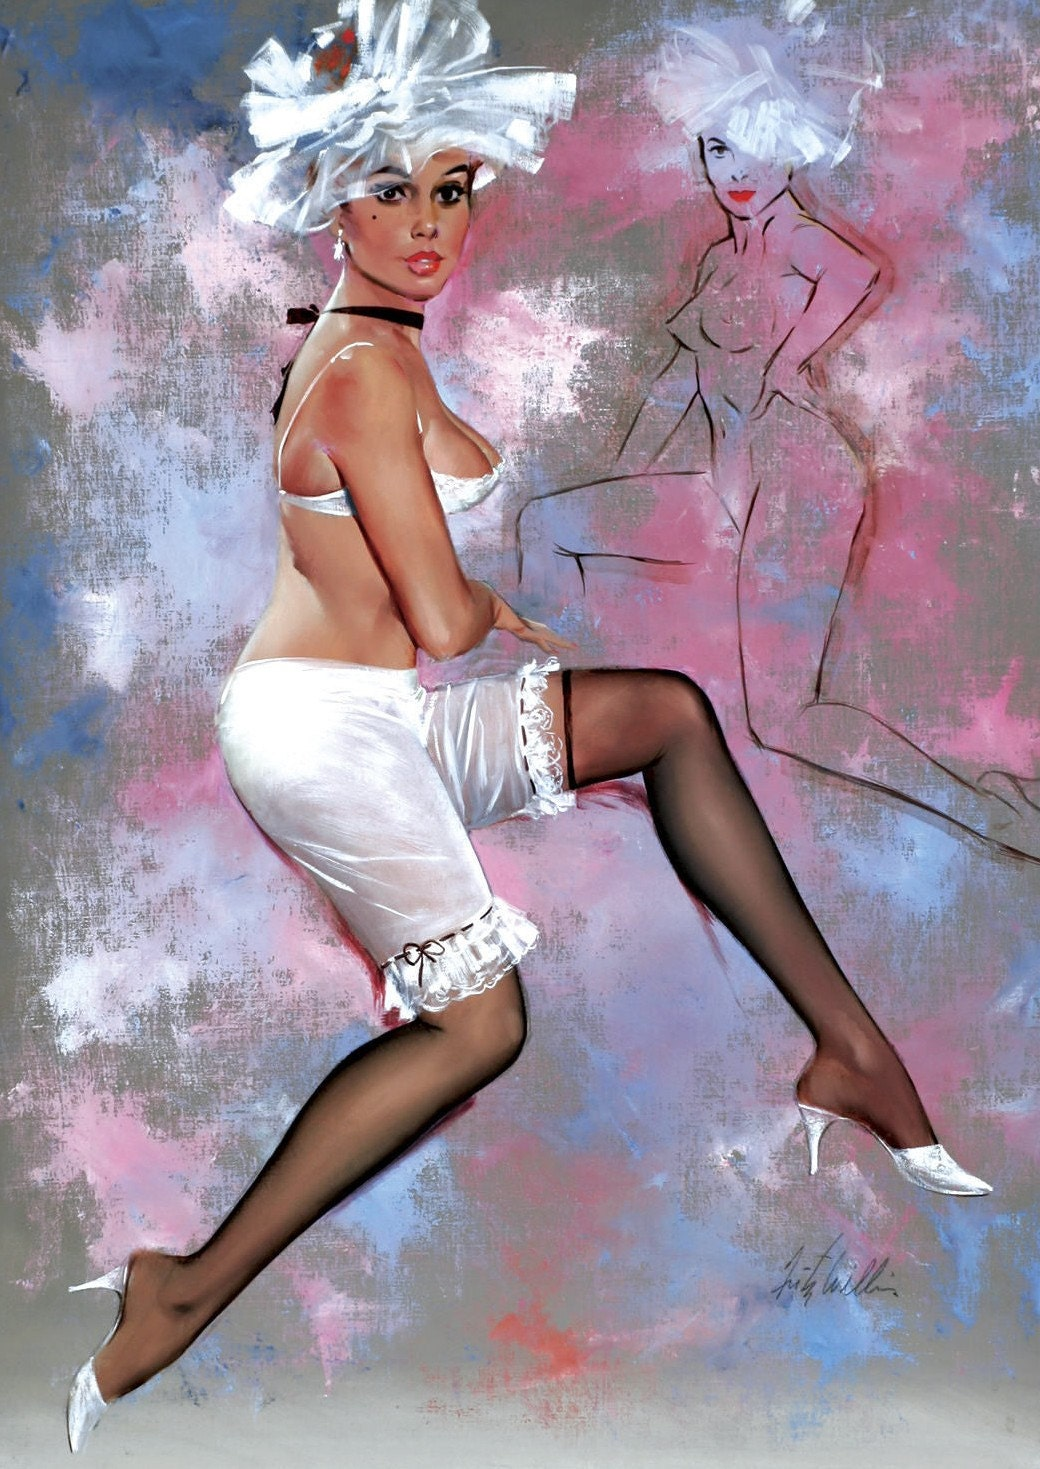 Fritz Willis - Pin Up Girls   Gallery of Vintage and